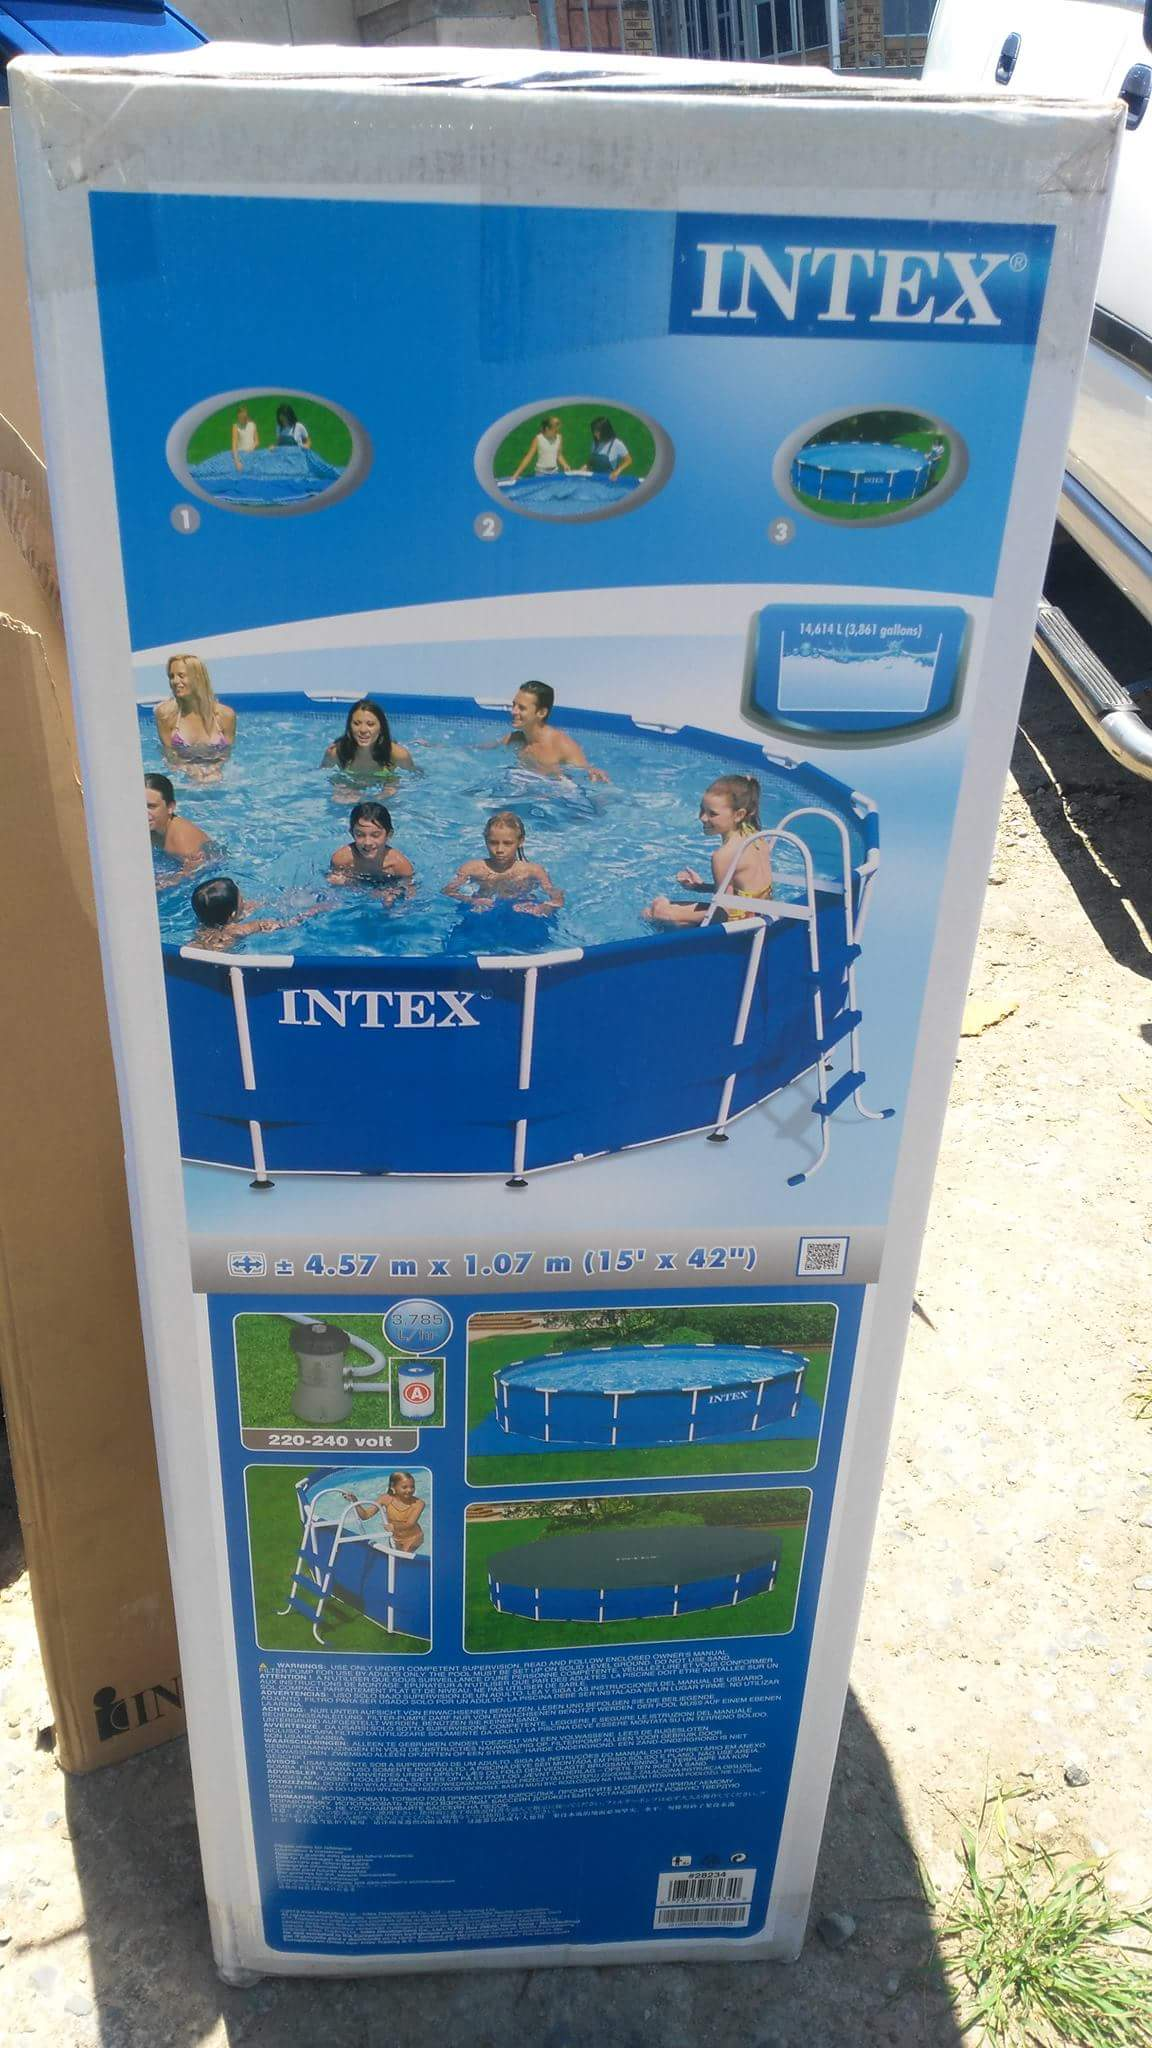 Pools and accessories in south africa junk mail - Intex swimming pool accessories south africa ...